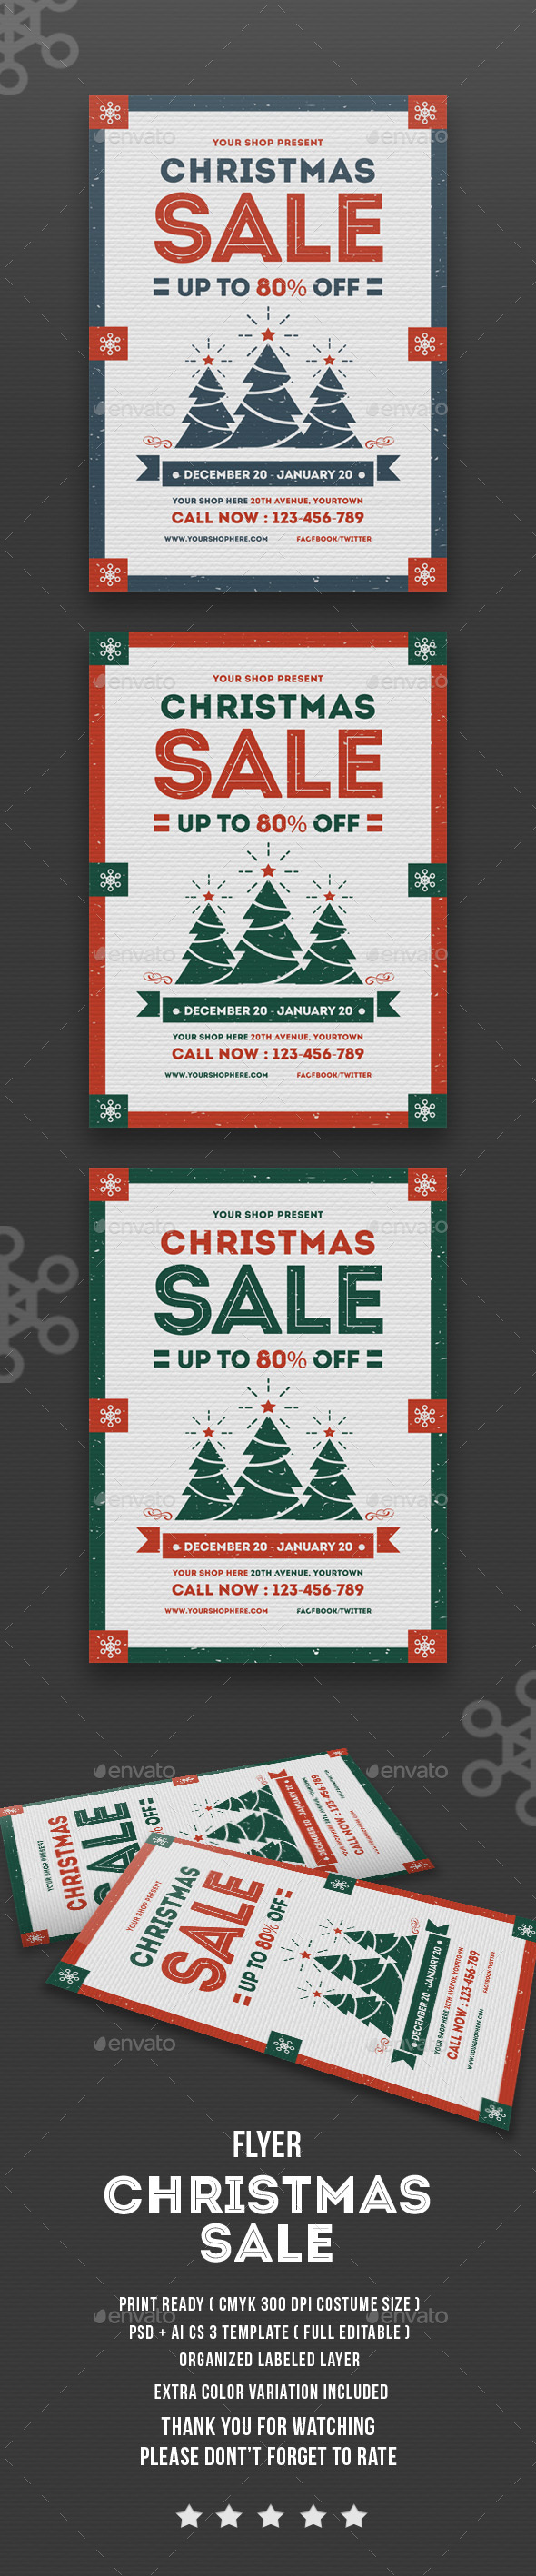 Flyer Christmas Sale - Flyers Print Templates